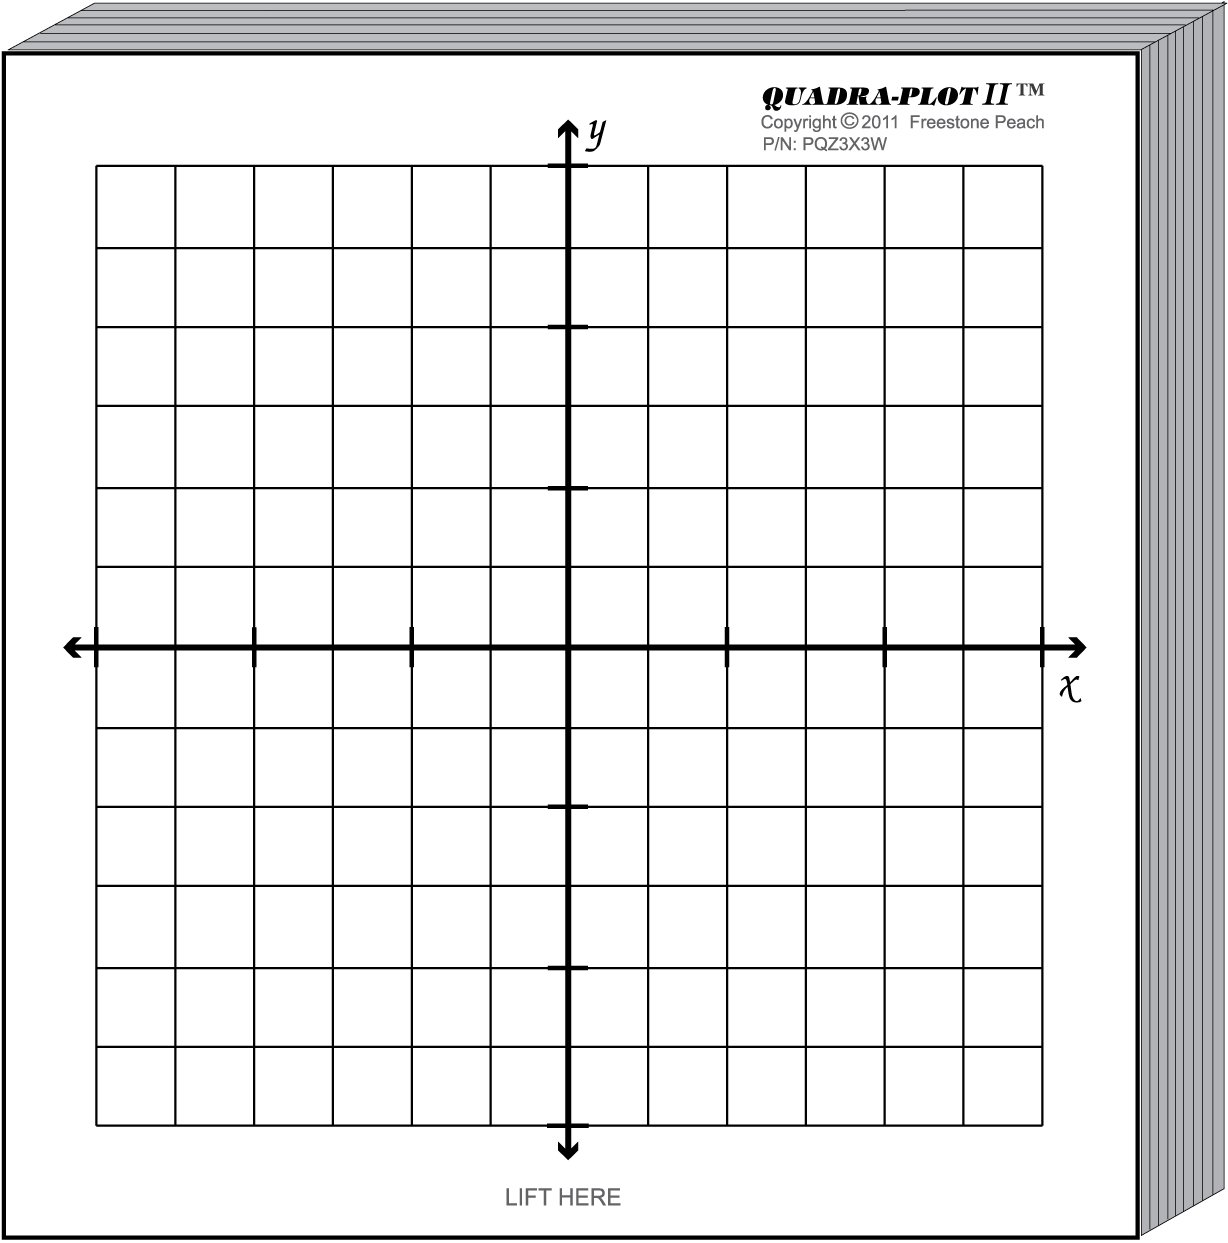 worksheet Coordinate Graph Paper amazon com graph paper kit six coordinate grid designs printed on 3x3 inch post it note pads mounted 8 5 x 11 cardst